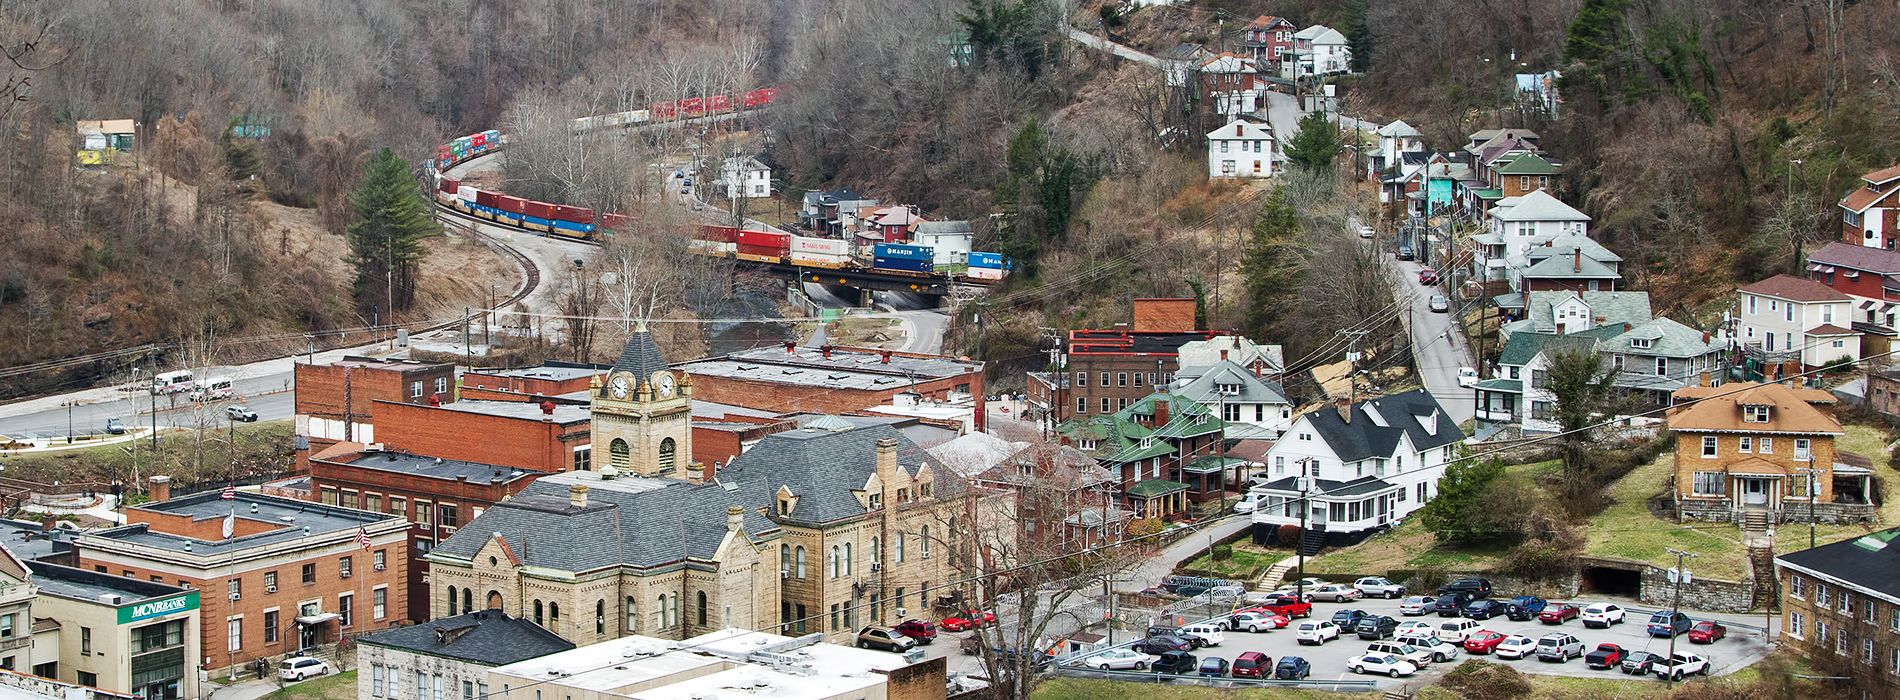 Welch, WV - Travis Dewitz